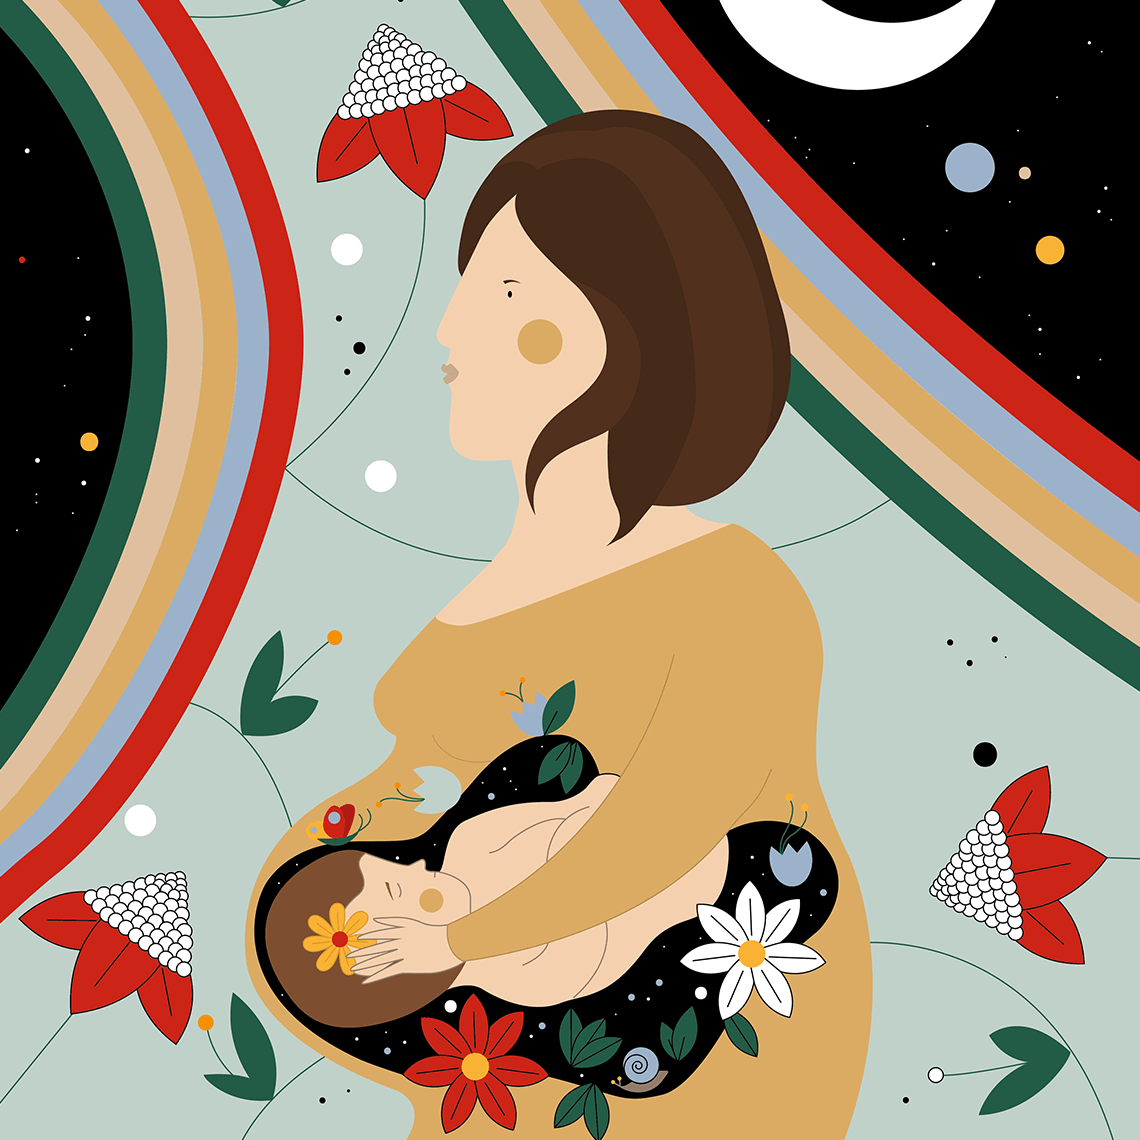 Inside her, the universe